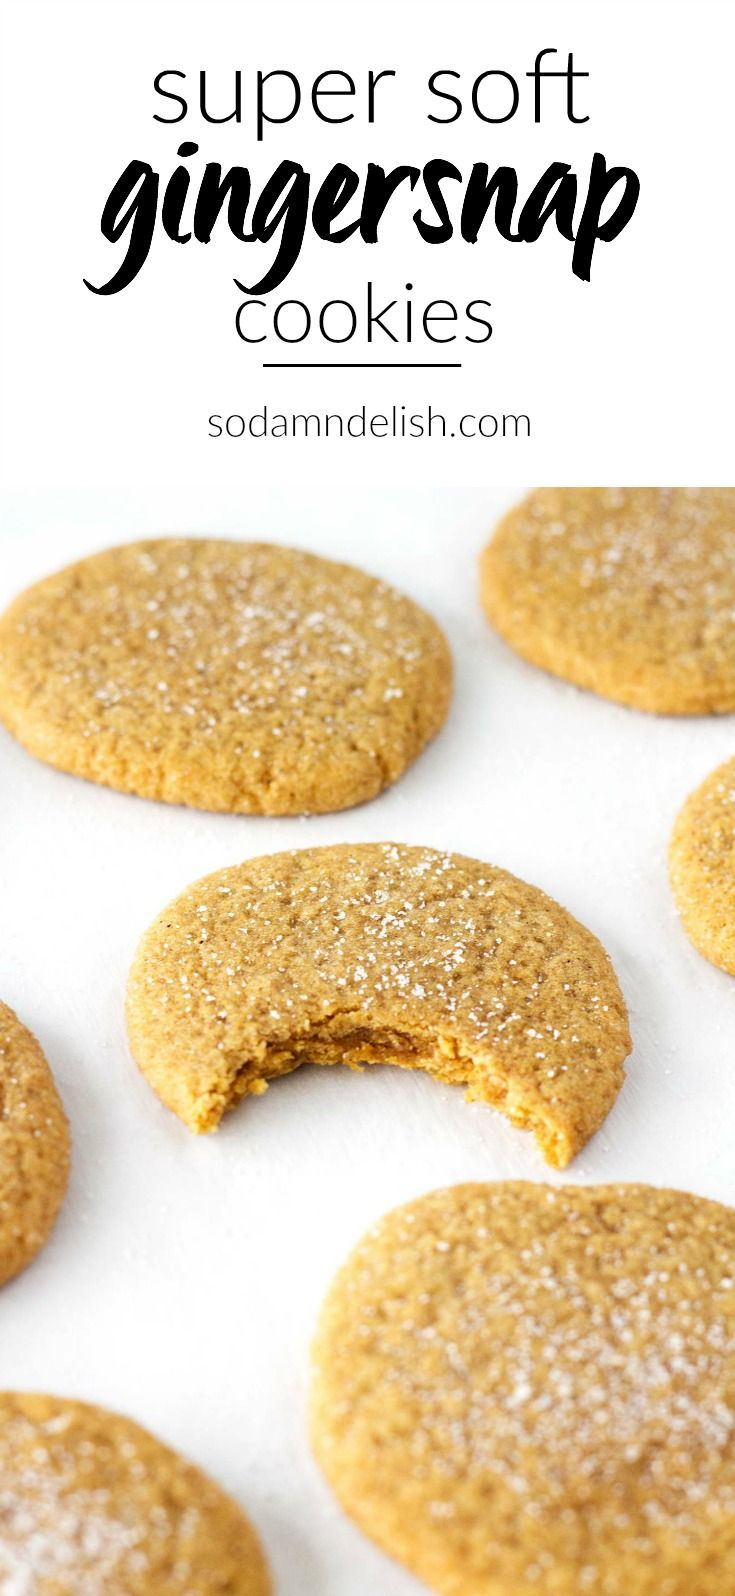 These super soft gingersnap cookies melt in your mouth with all that gingersnap goodness!